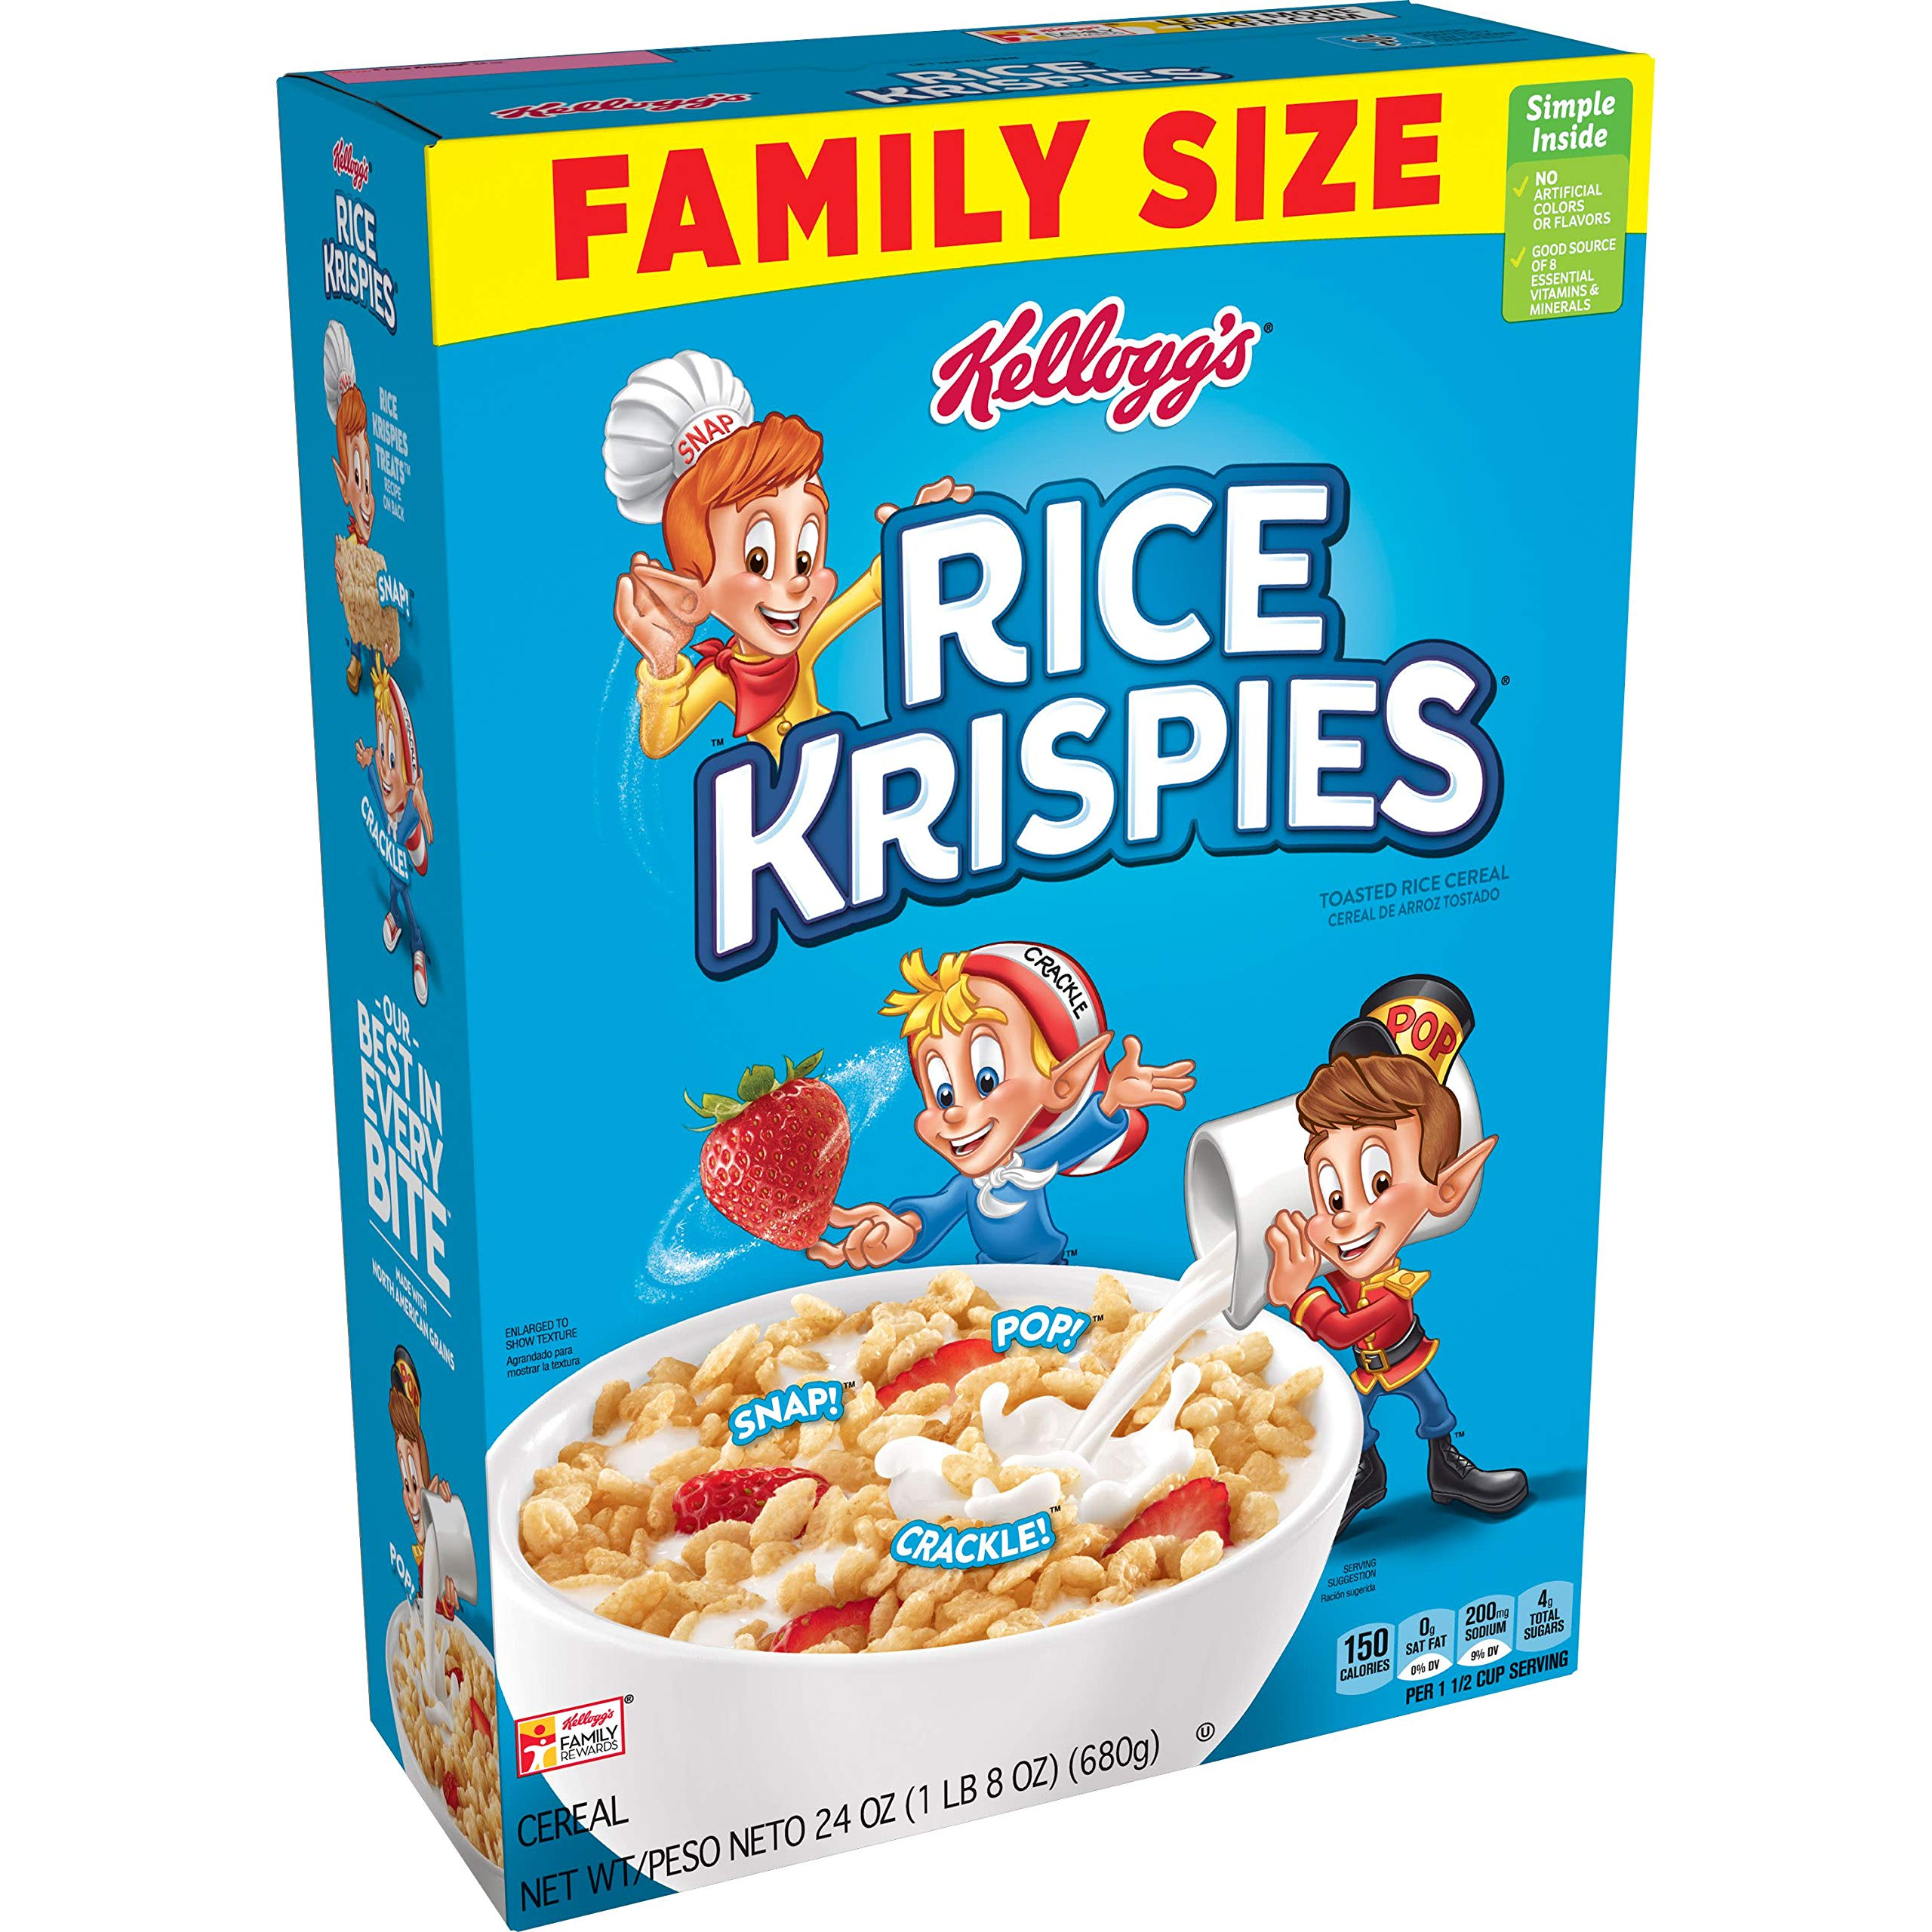 Kellogg's Rice Krispies, Breakfast Cereal, Original, No Artificial Colors or Flavors, Family Size, 24oz Box